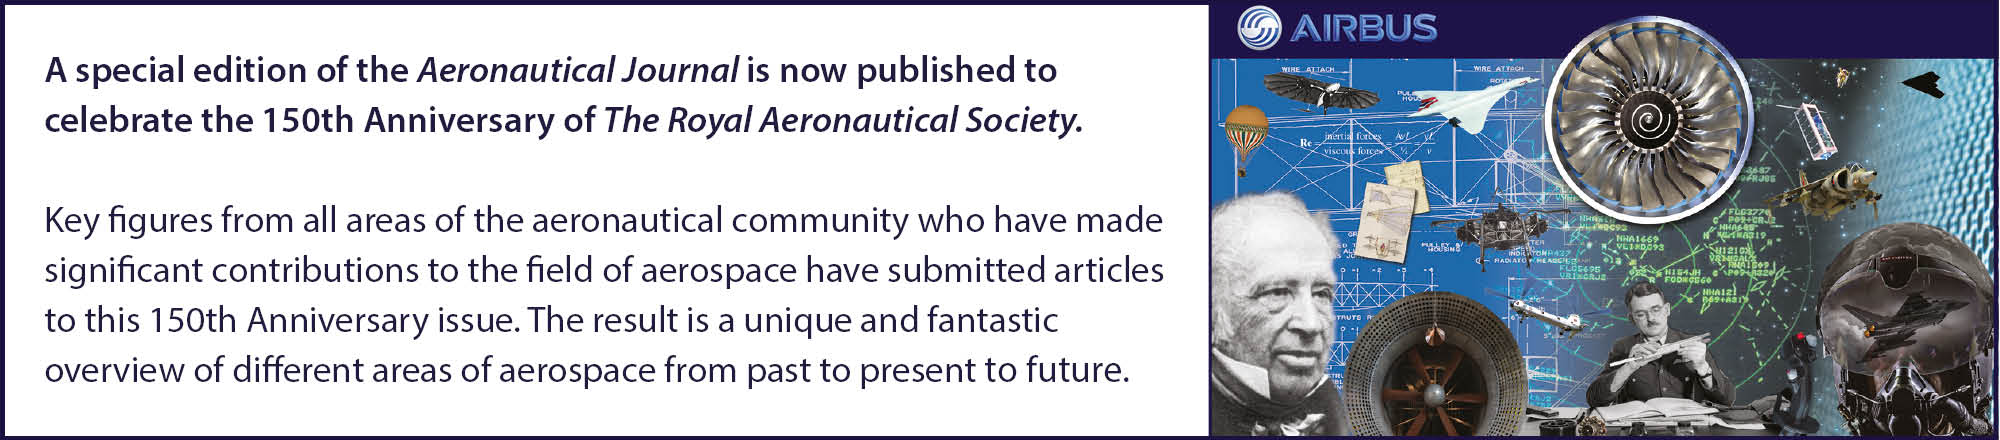 The Aeronautical Journal 150th Anniversary Issue